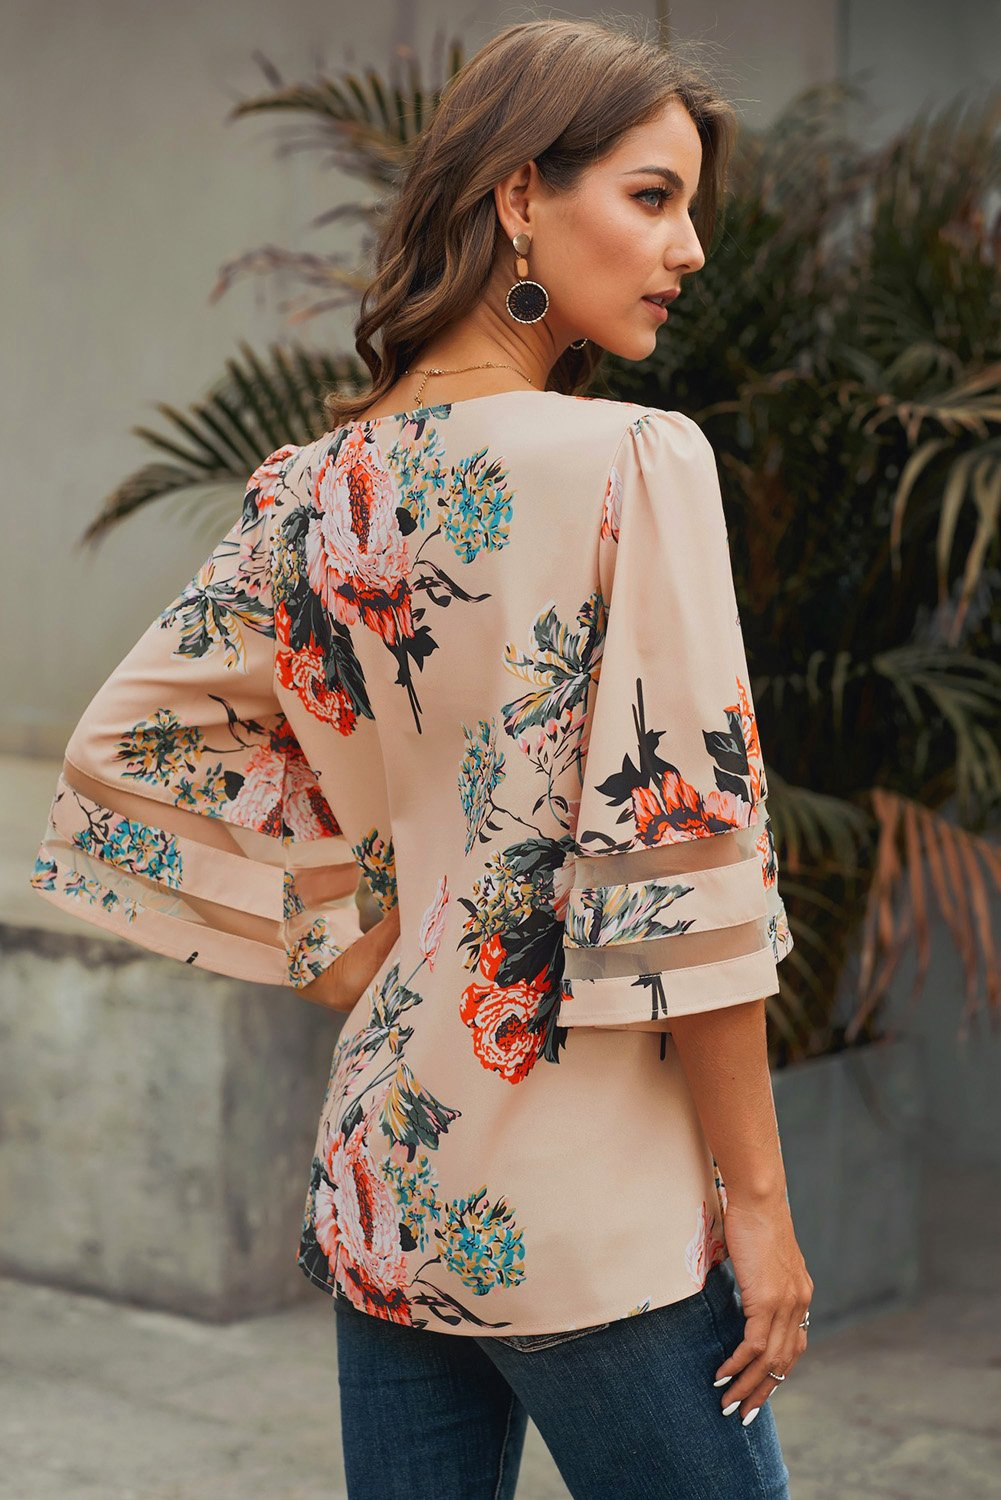 Apricot 3/4 Flared Sleeve Floral Chiffon Blouse